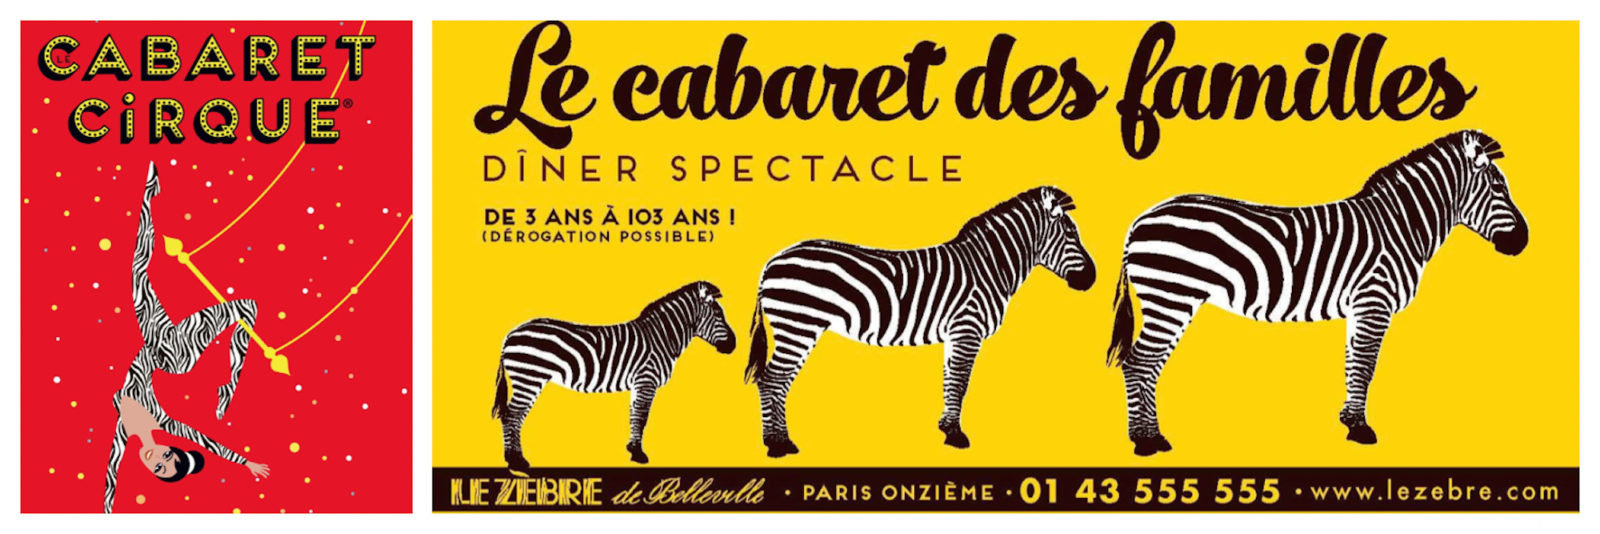 Posters for kid-friendly cabarets in Paris like the Cabaret du Cirque (right) and the Cabaret des Familles (left), perfect for a rainy day with kids in Paris.